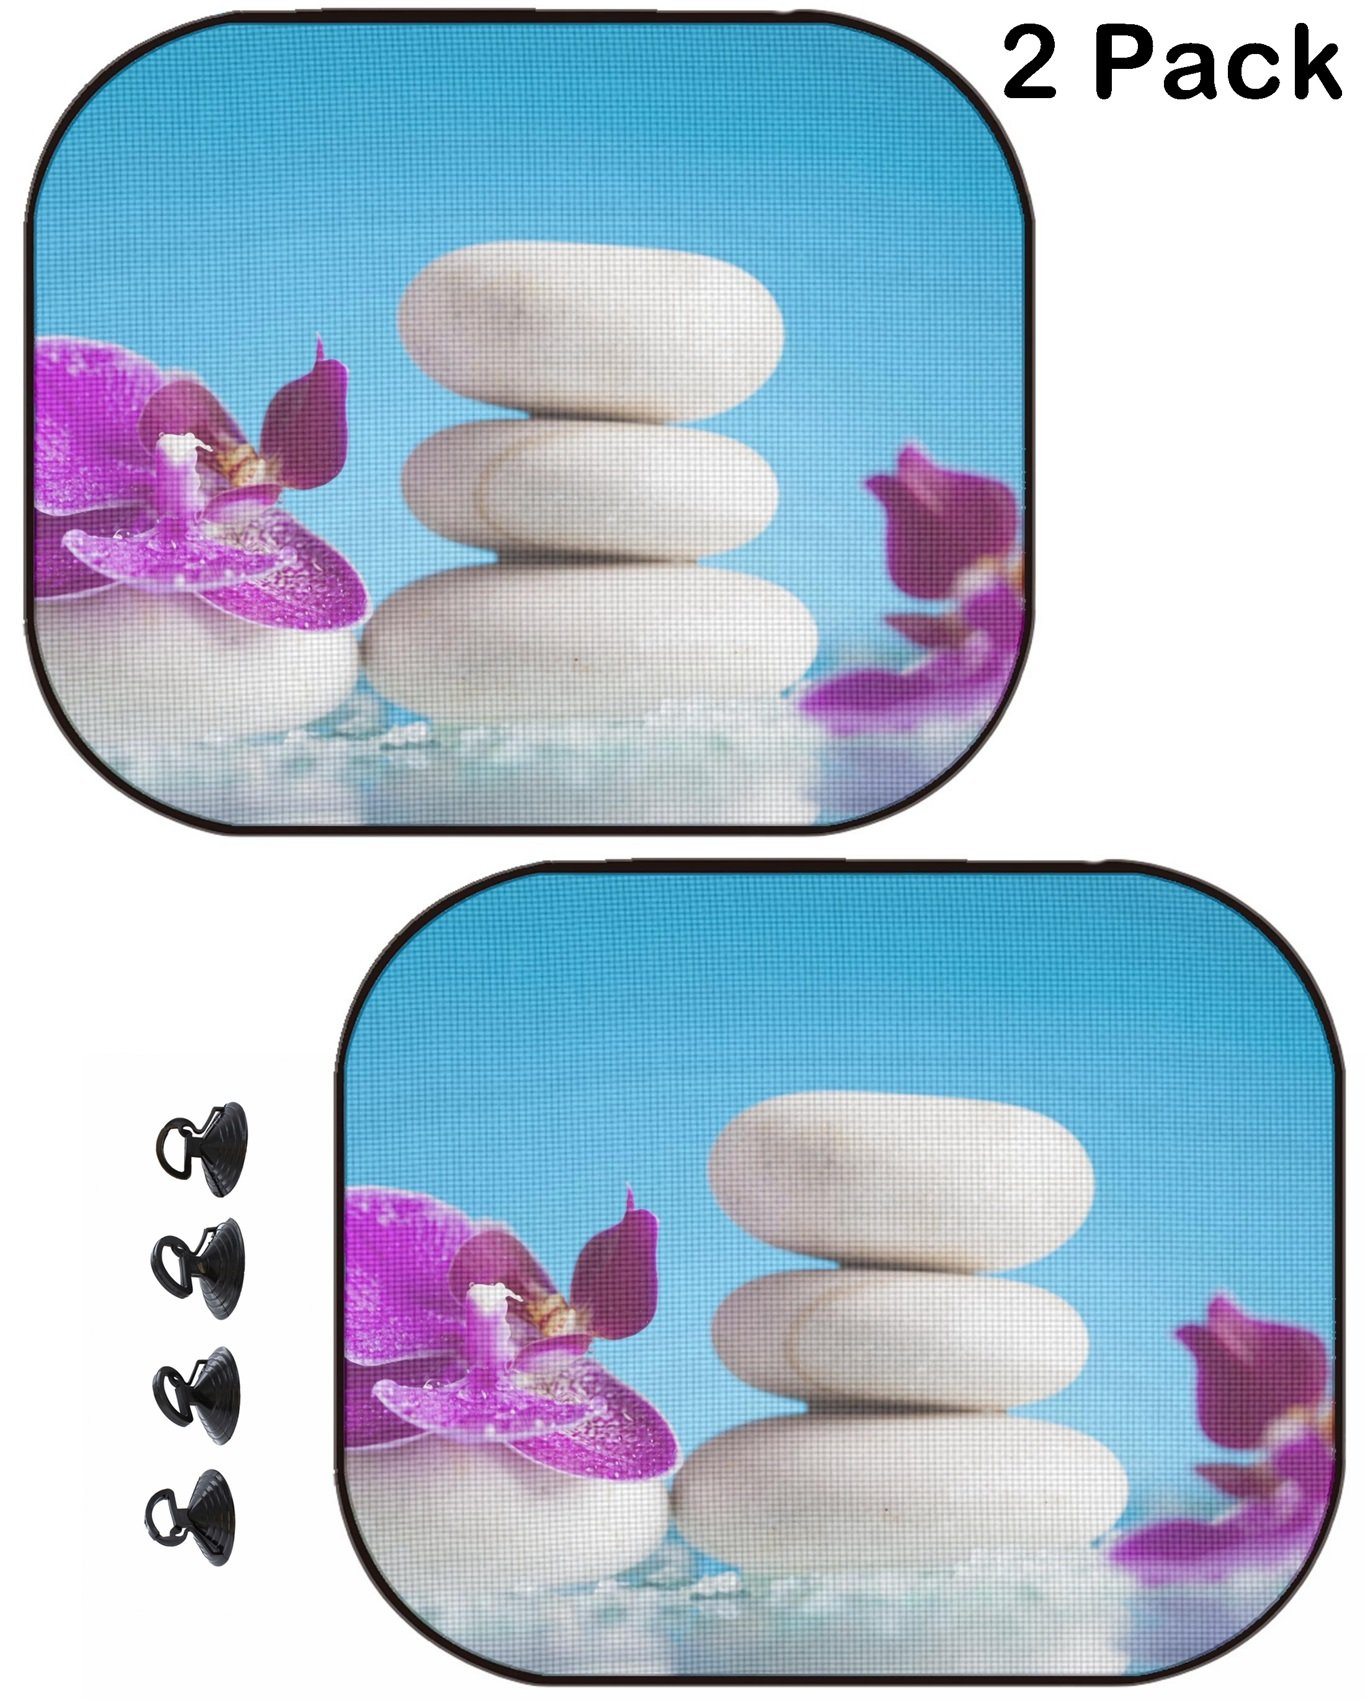 MSD Car Sun Shade Protector Block Damaging UV Rays Sunlight Heat for All Vehicles, 2 Pack Image ID 35620197 Spa Still Life with Pink Orchid and White Zen Stone in a Serenity Poo